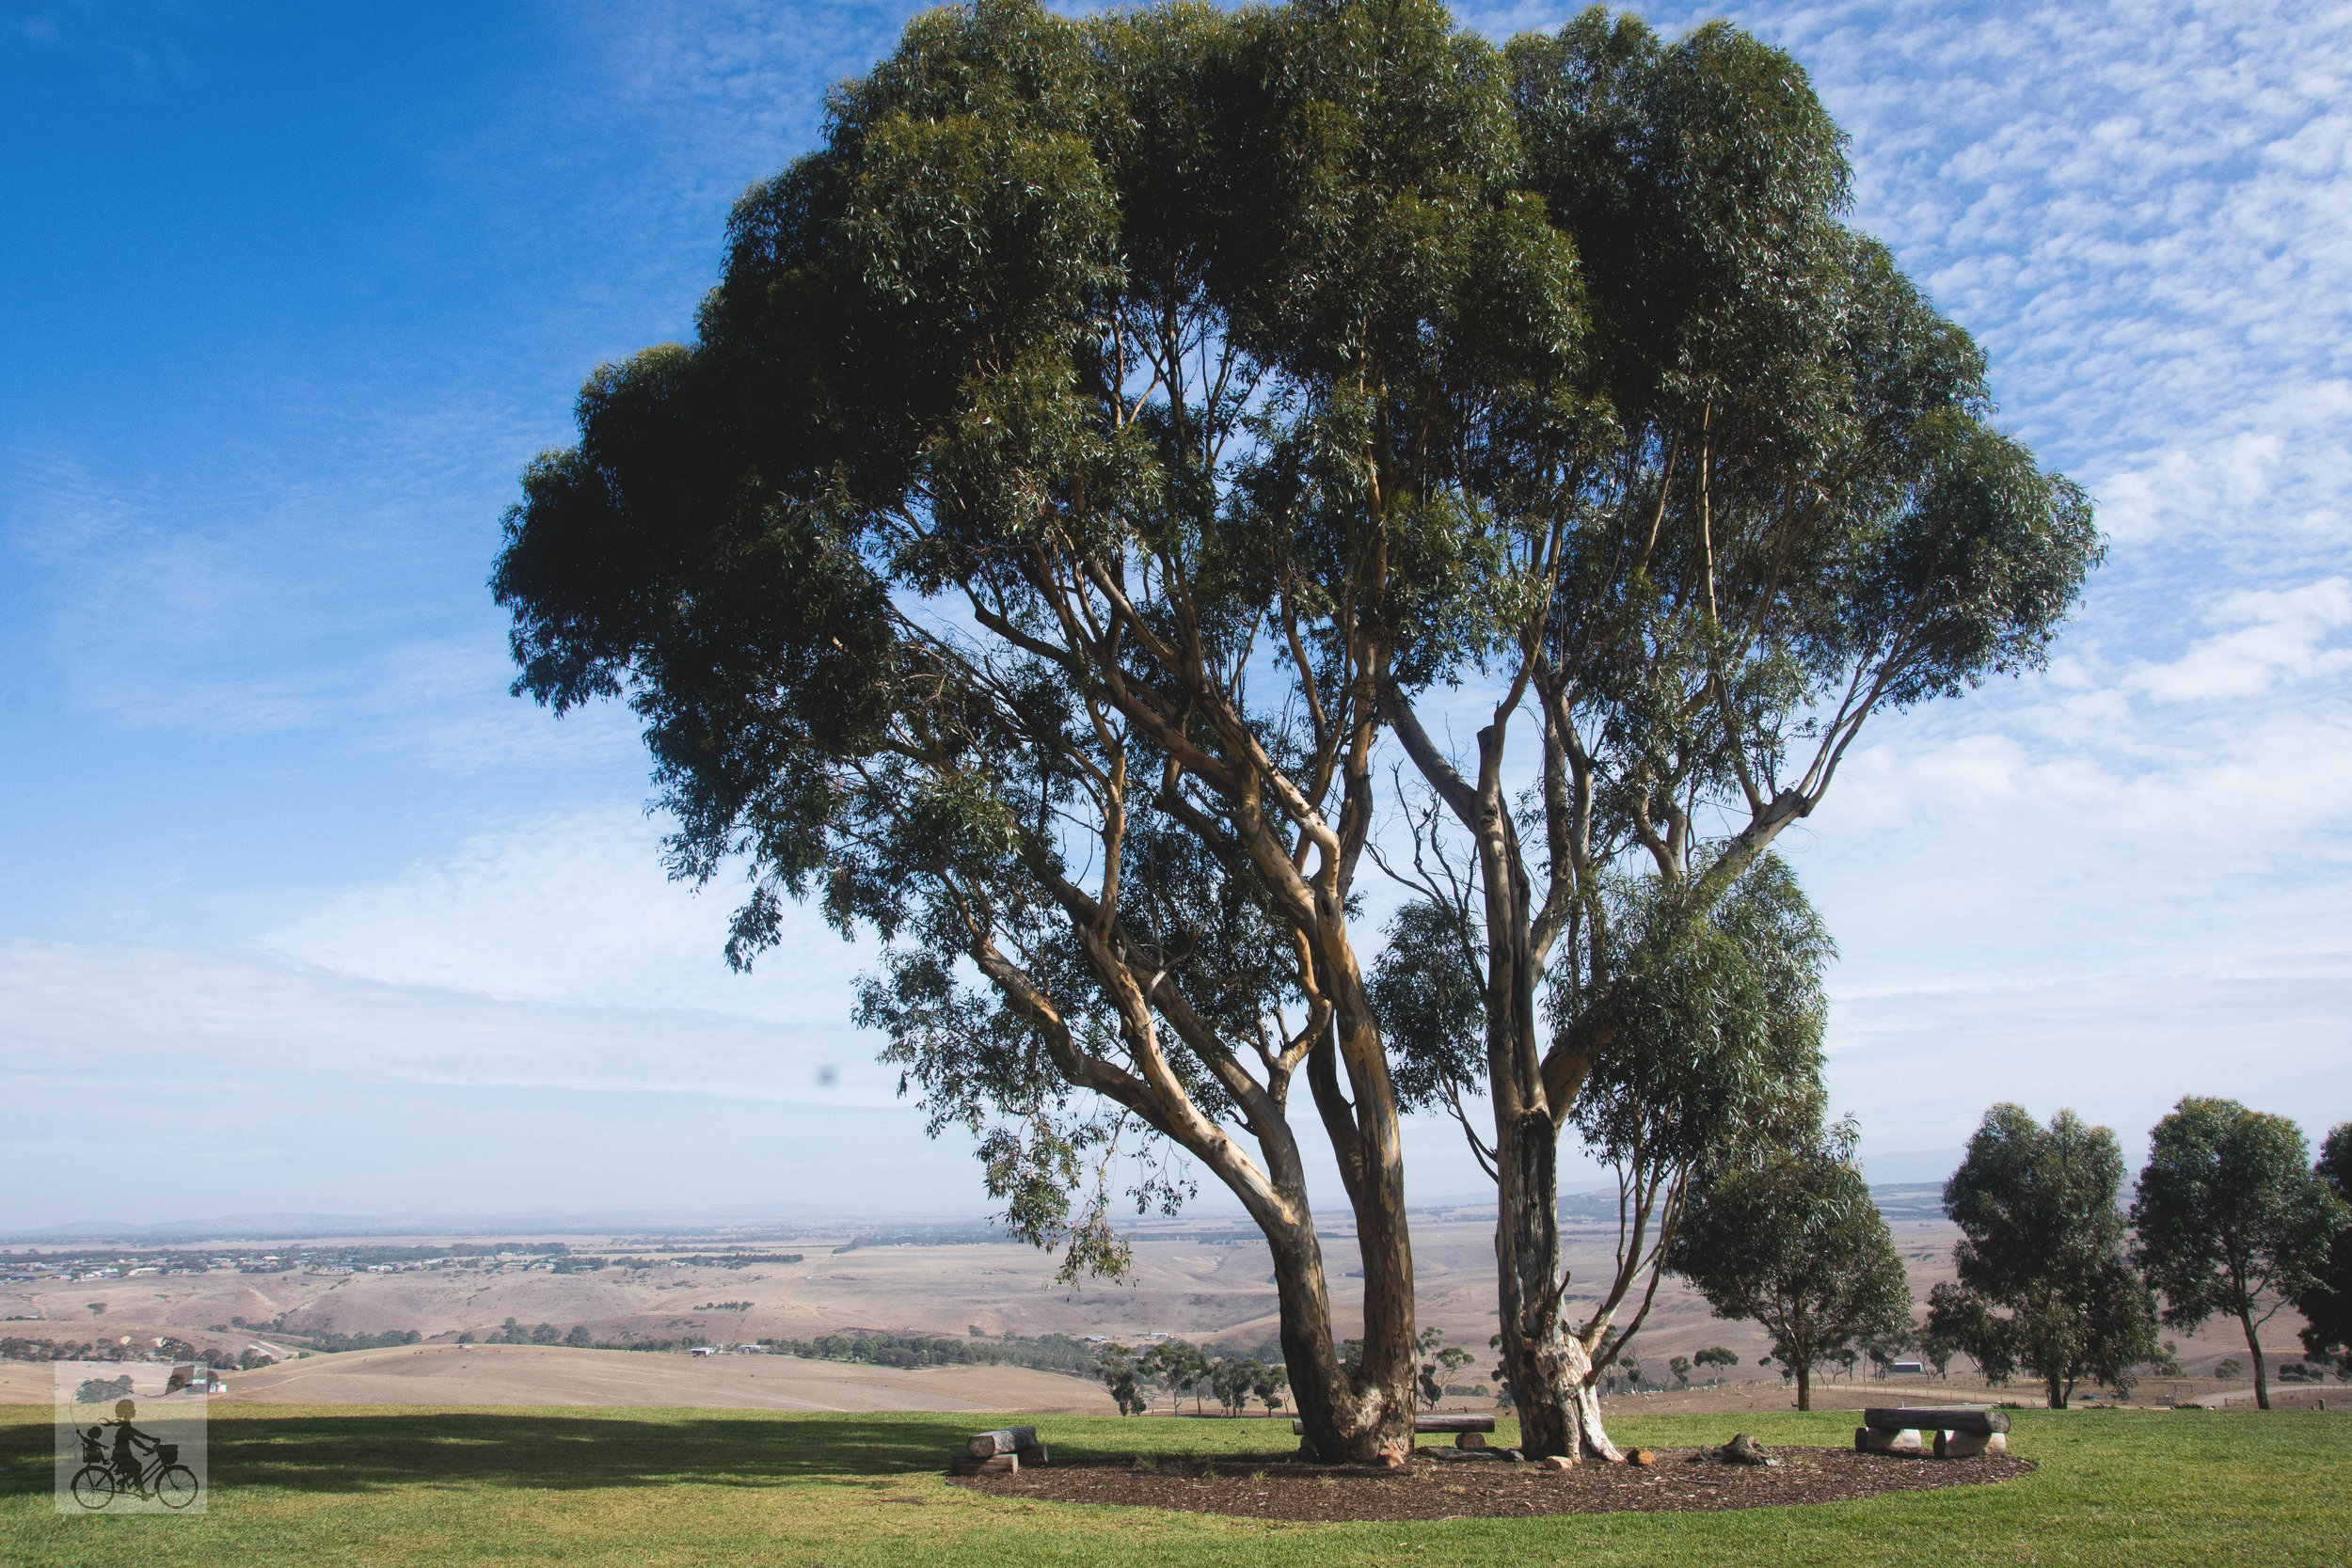 marnong estate, mickelham - mamma knows north